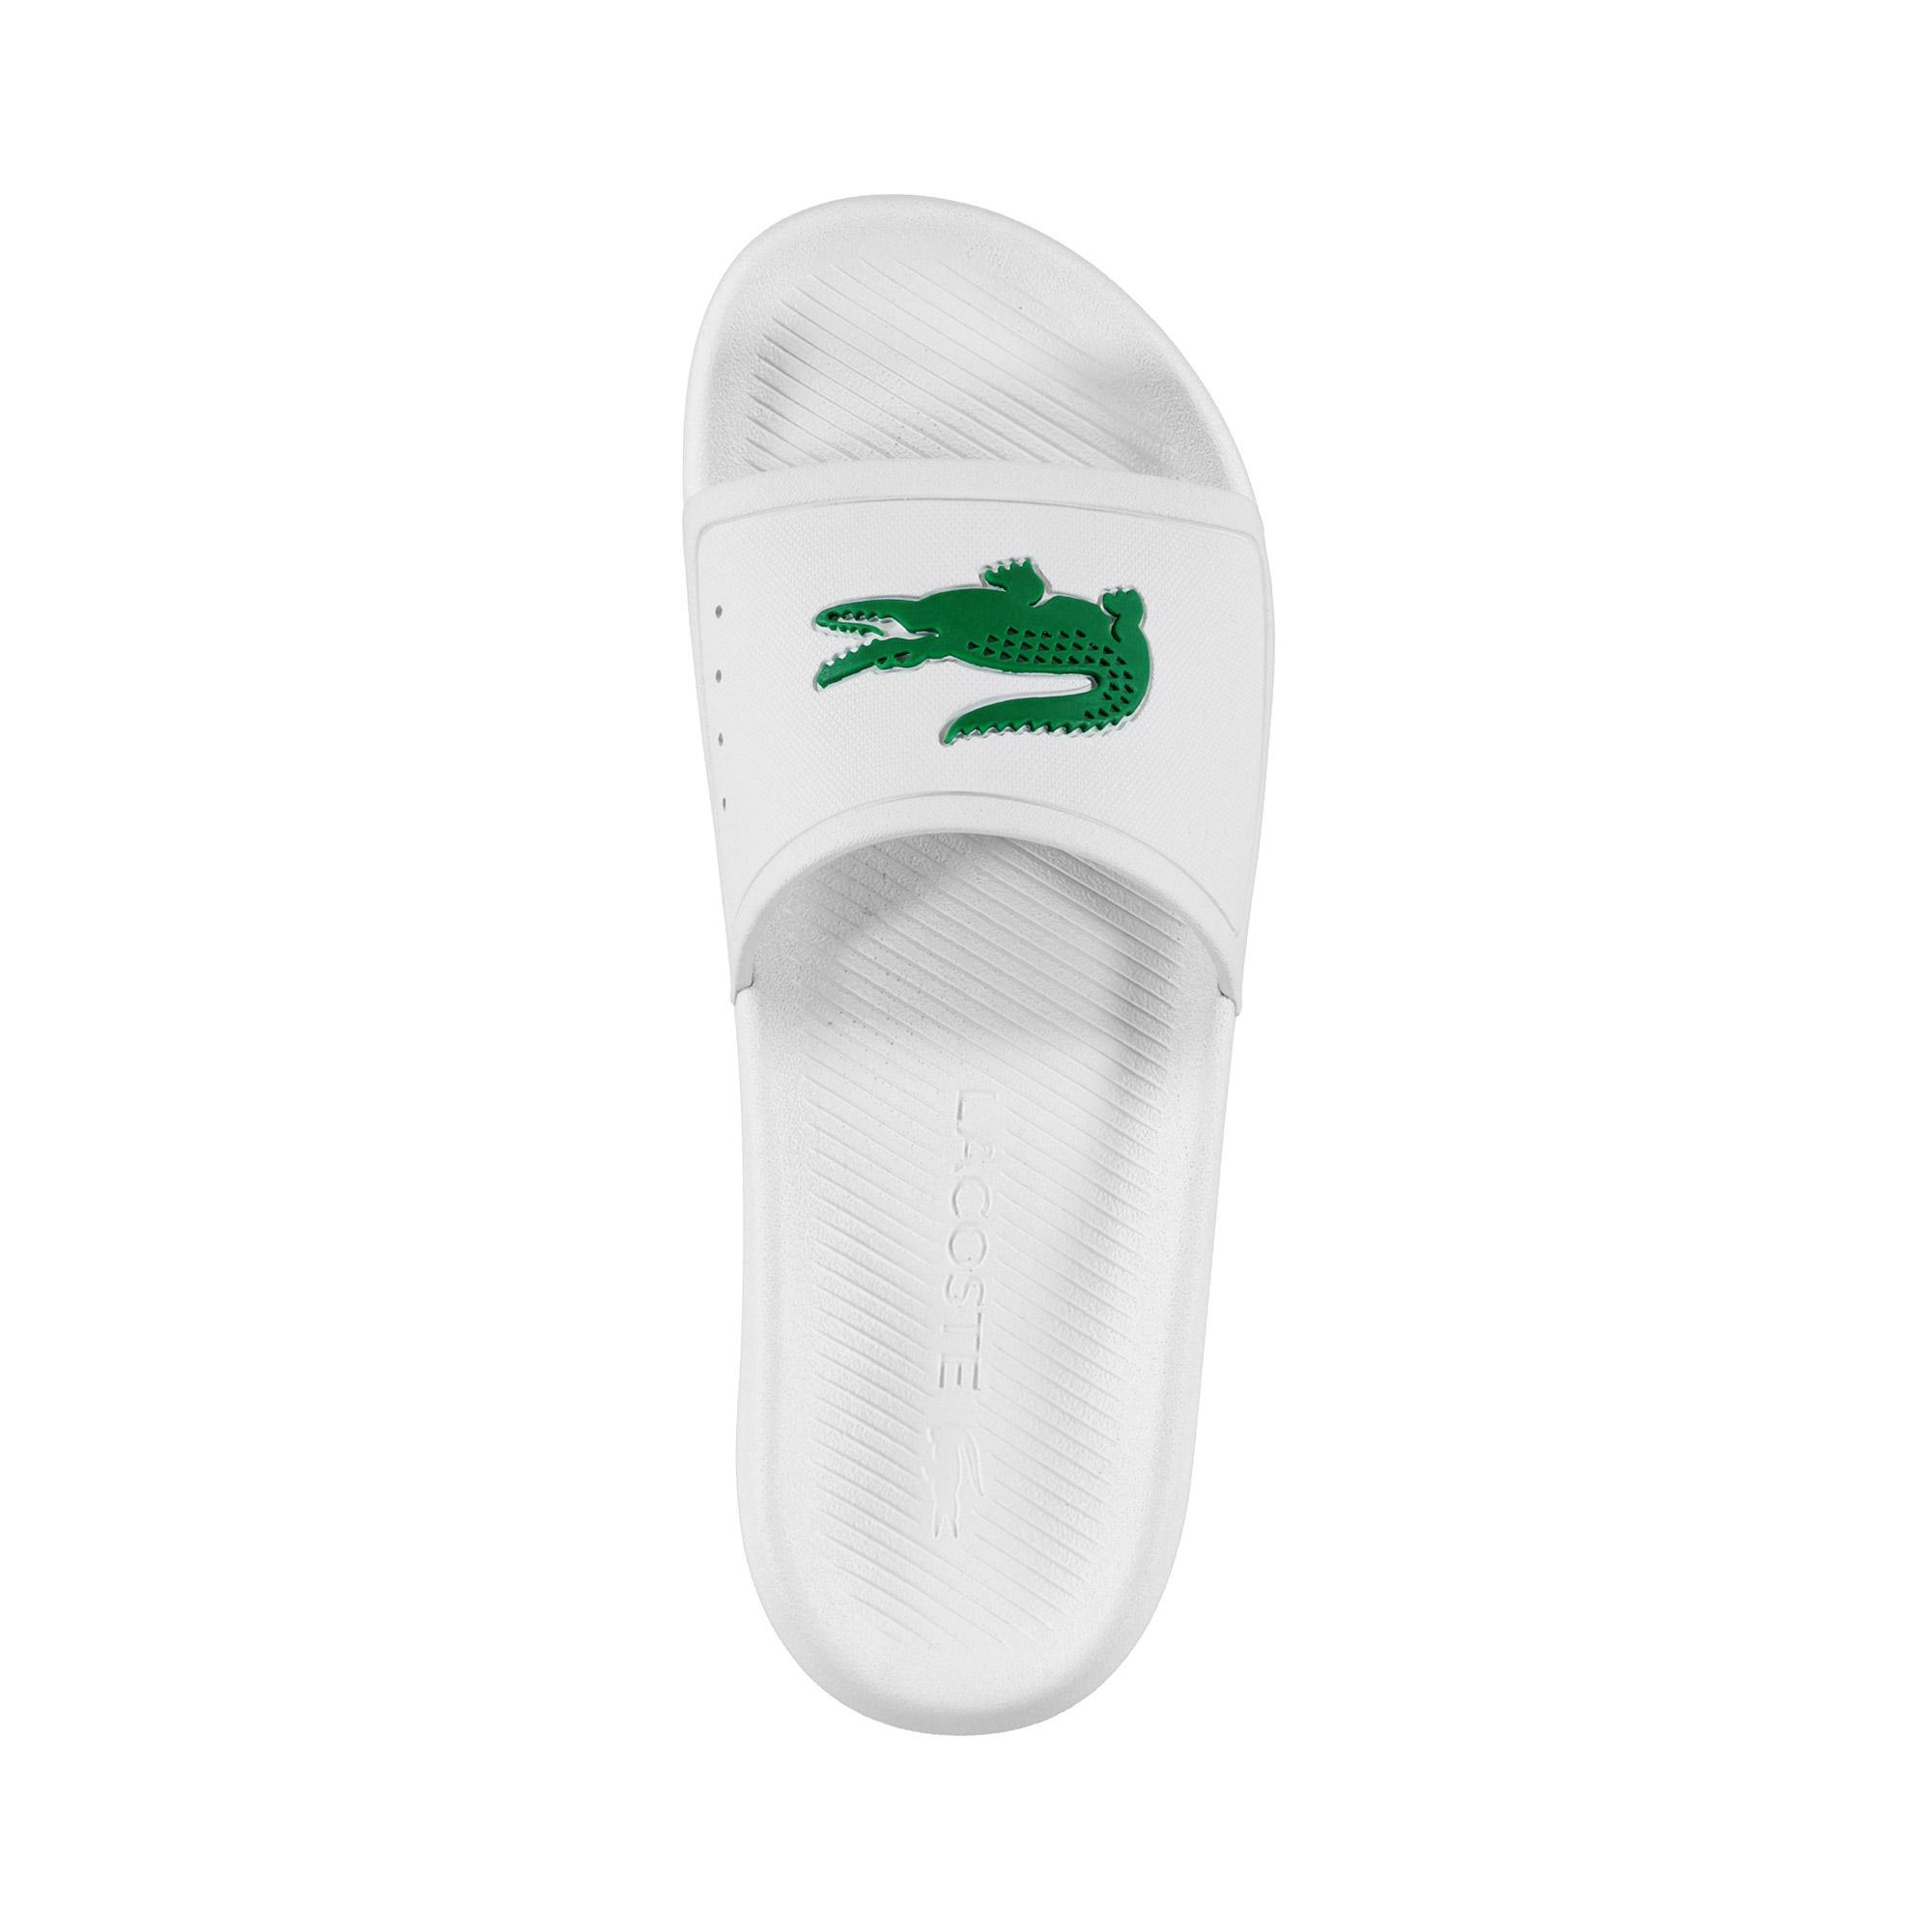 Lacoste Men's Croco Water-Repellent Synthetic Slides